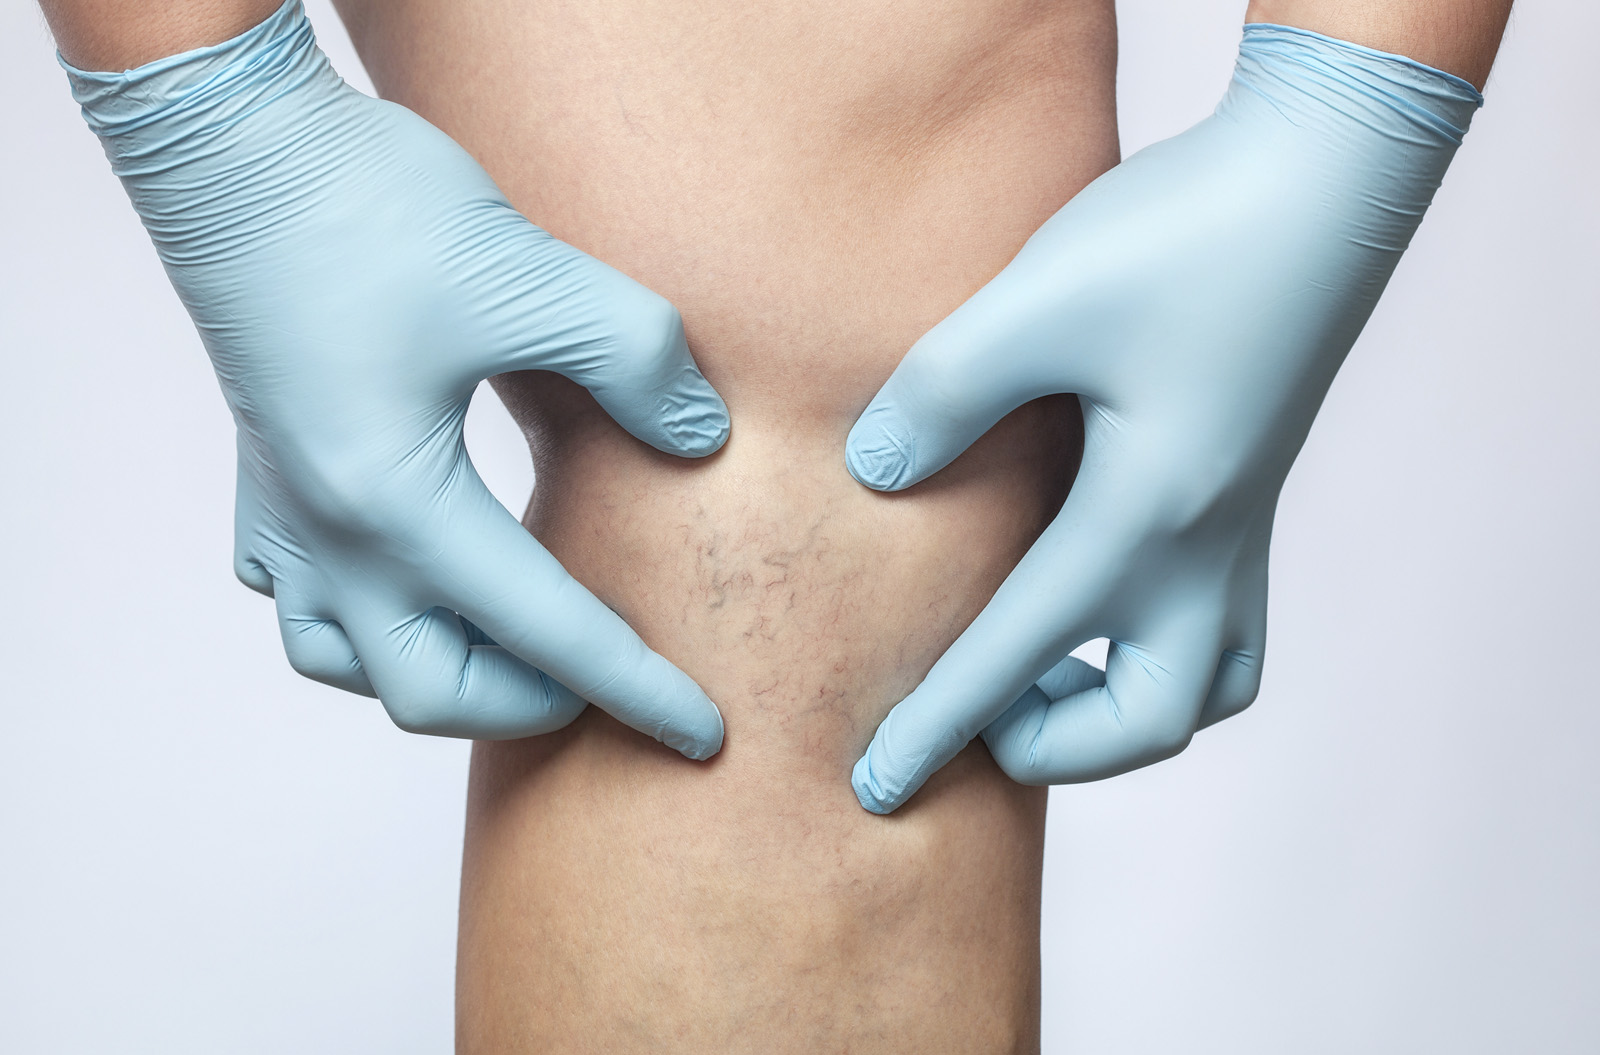 What You Need To Know About Chronic Venous Insufficiency ...